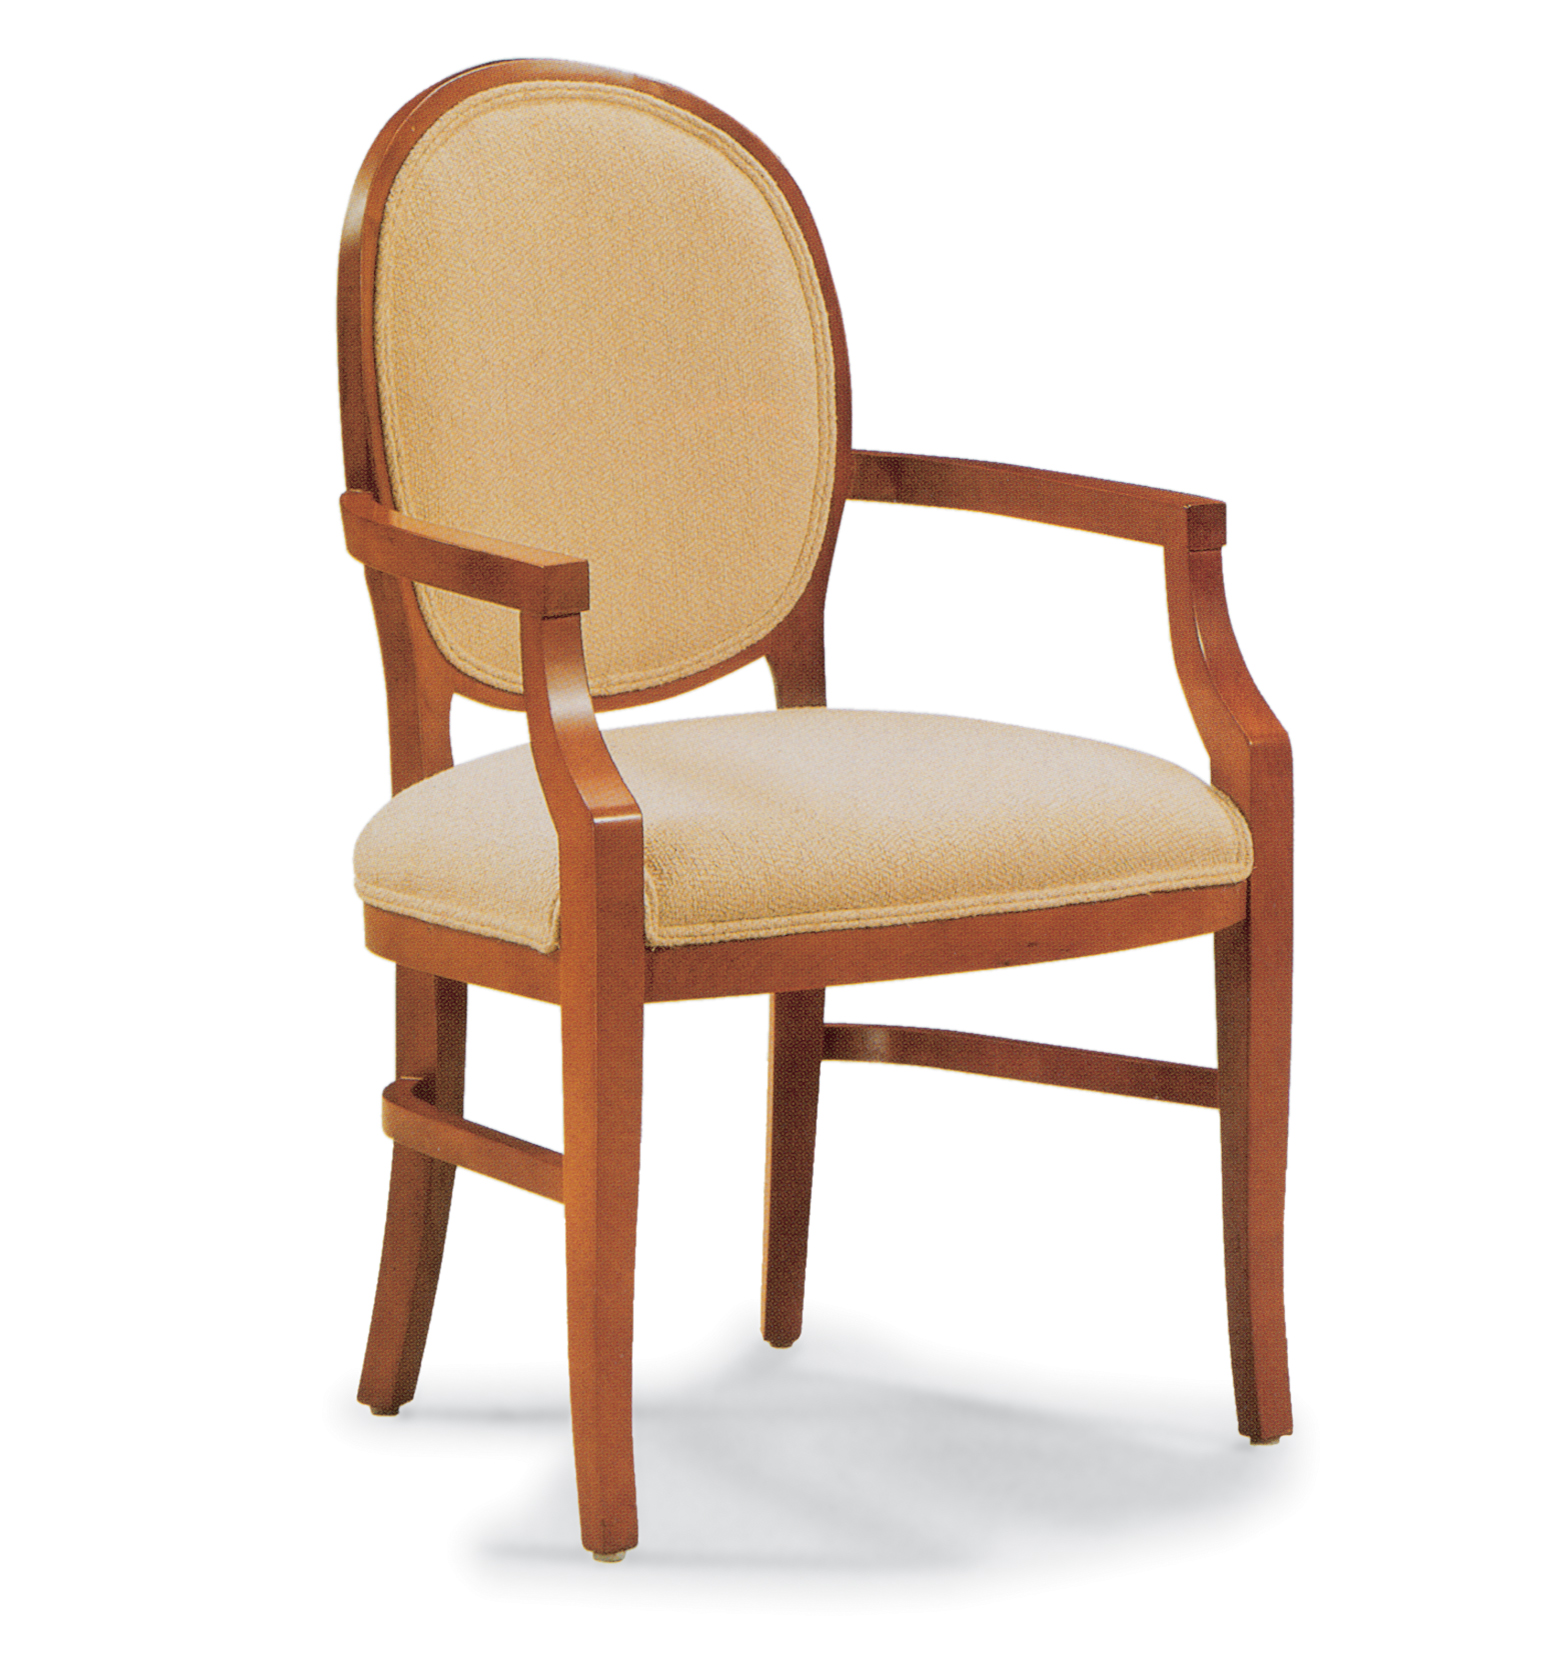 G wood arm chair